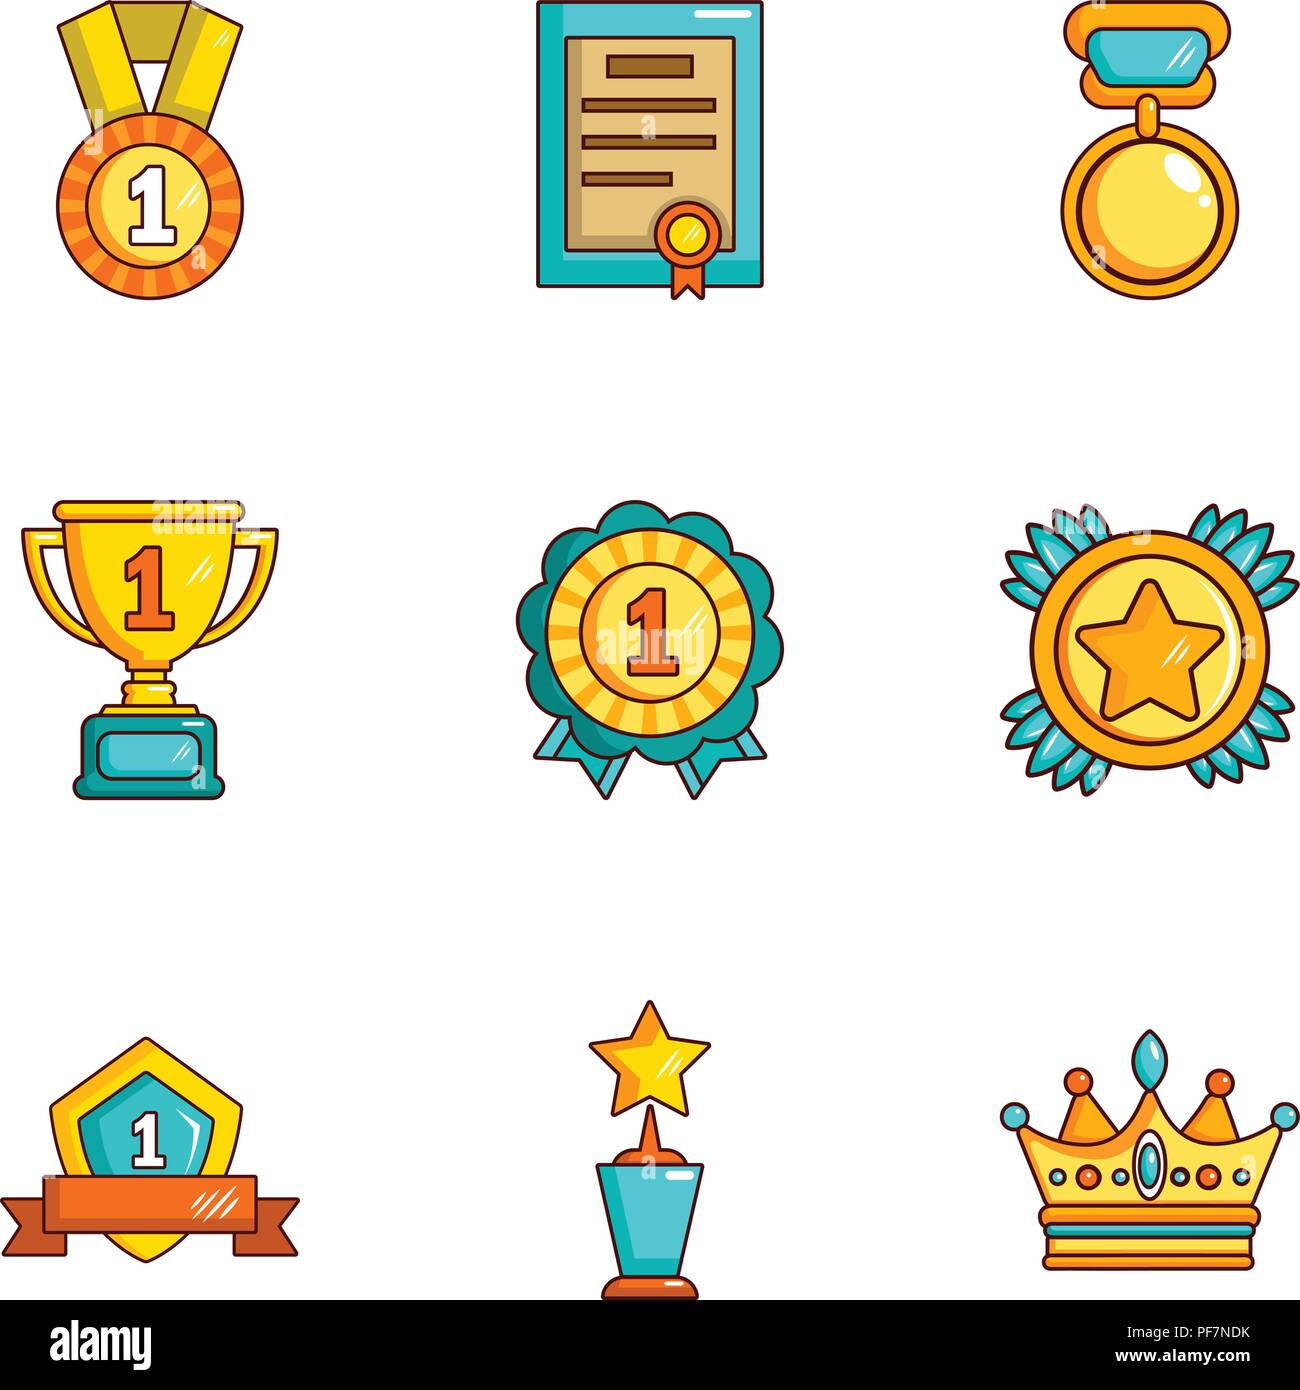 Offering of prize icons set, cartoon style - Stock Image